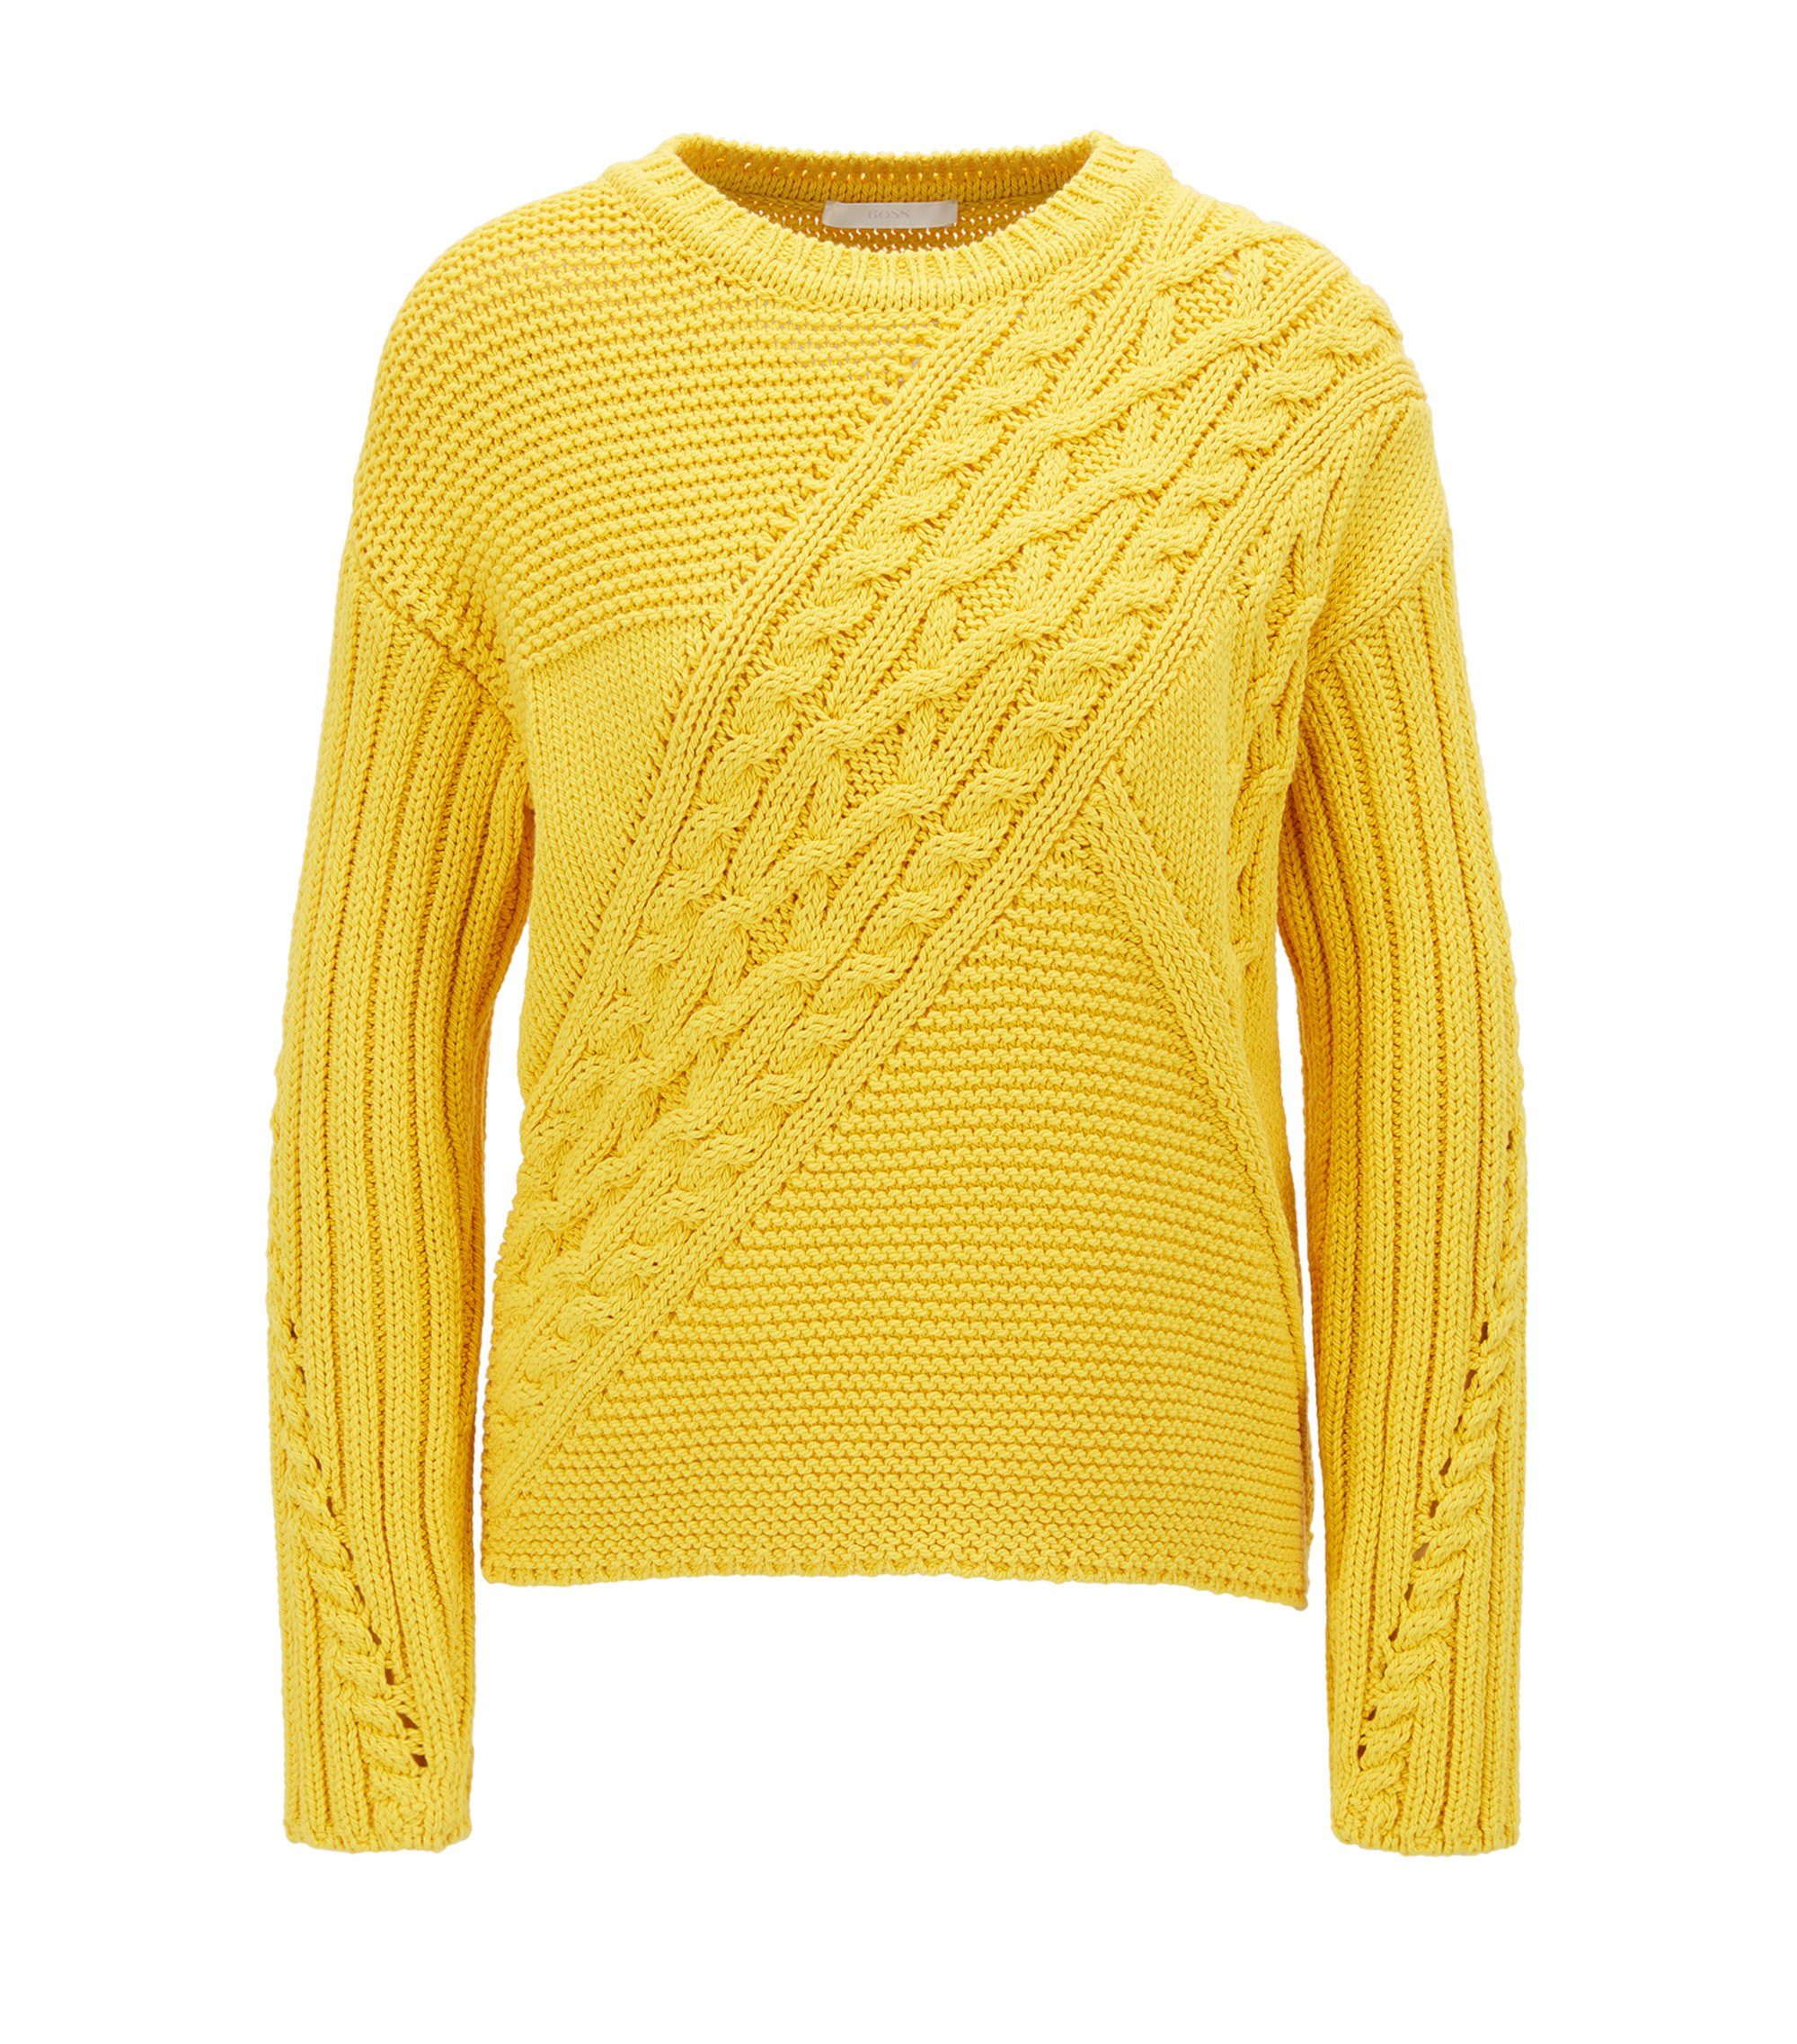 Cotton-blend sweater in a patchworked knit, Yellow